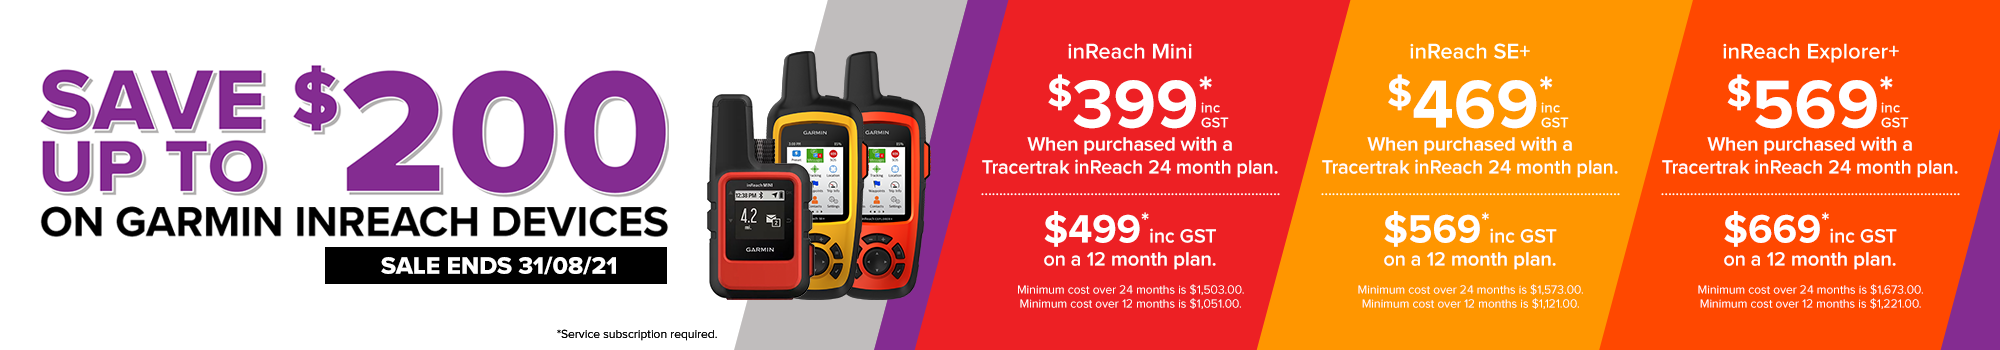 save up to $200 on garmin inreach devices when purchased with a tracertrak plan promo extended